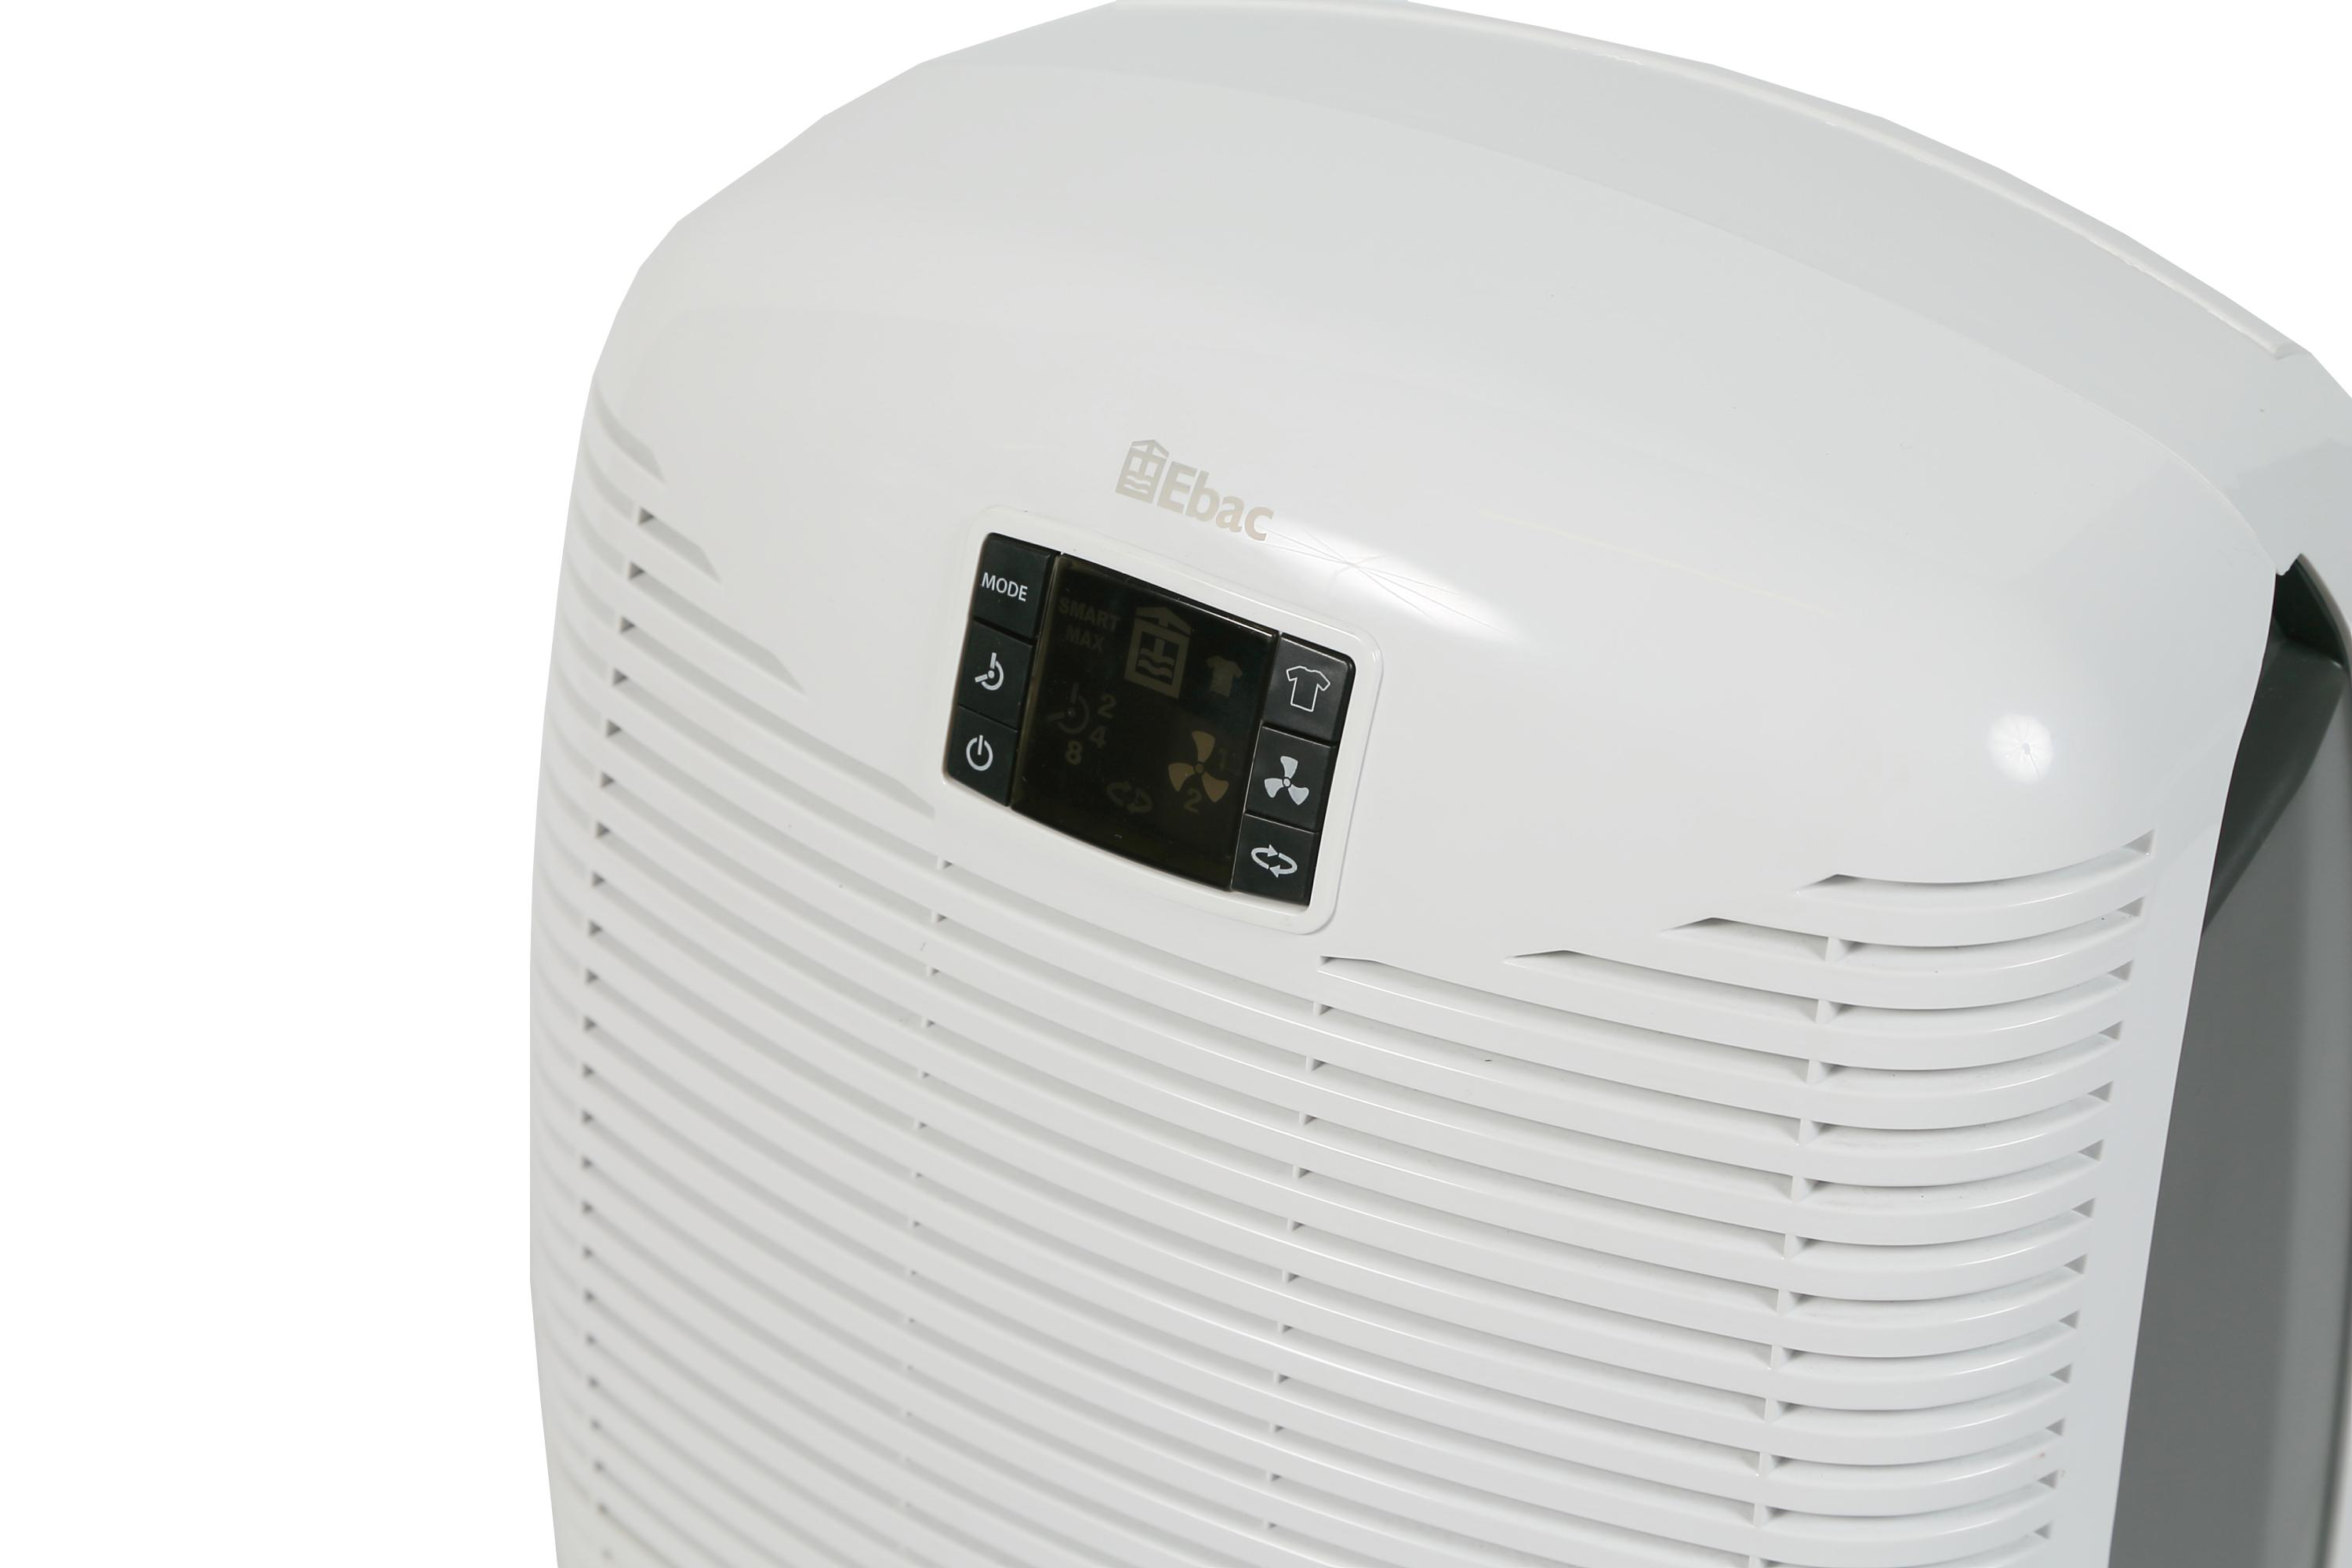 Ebac 3650e Dehumidifier 18 Litre: Amazon.co.uk: Kitchen & Home #20231E